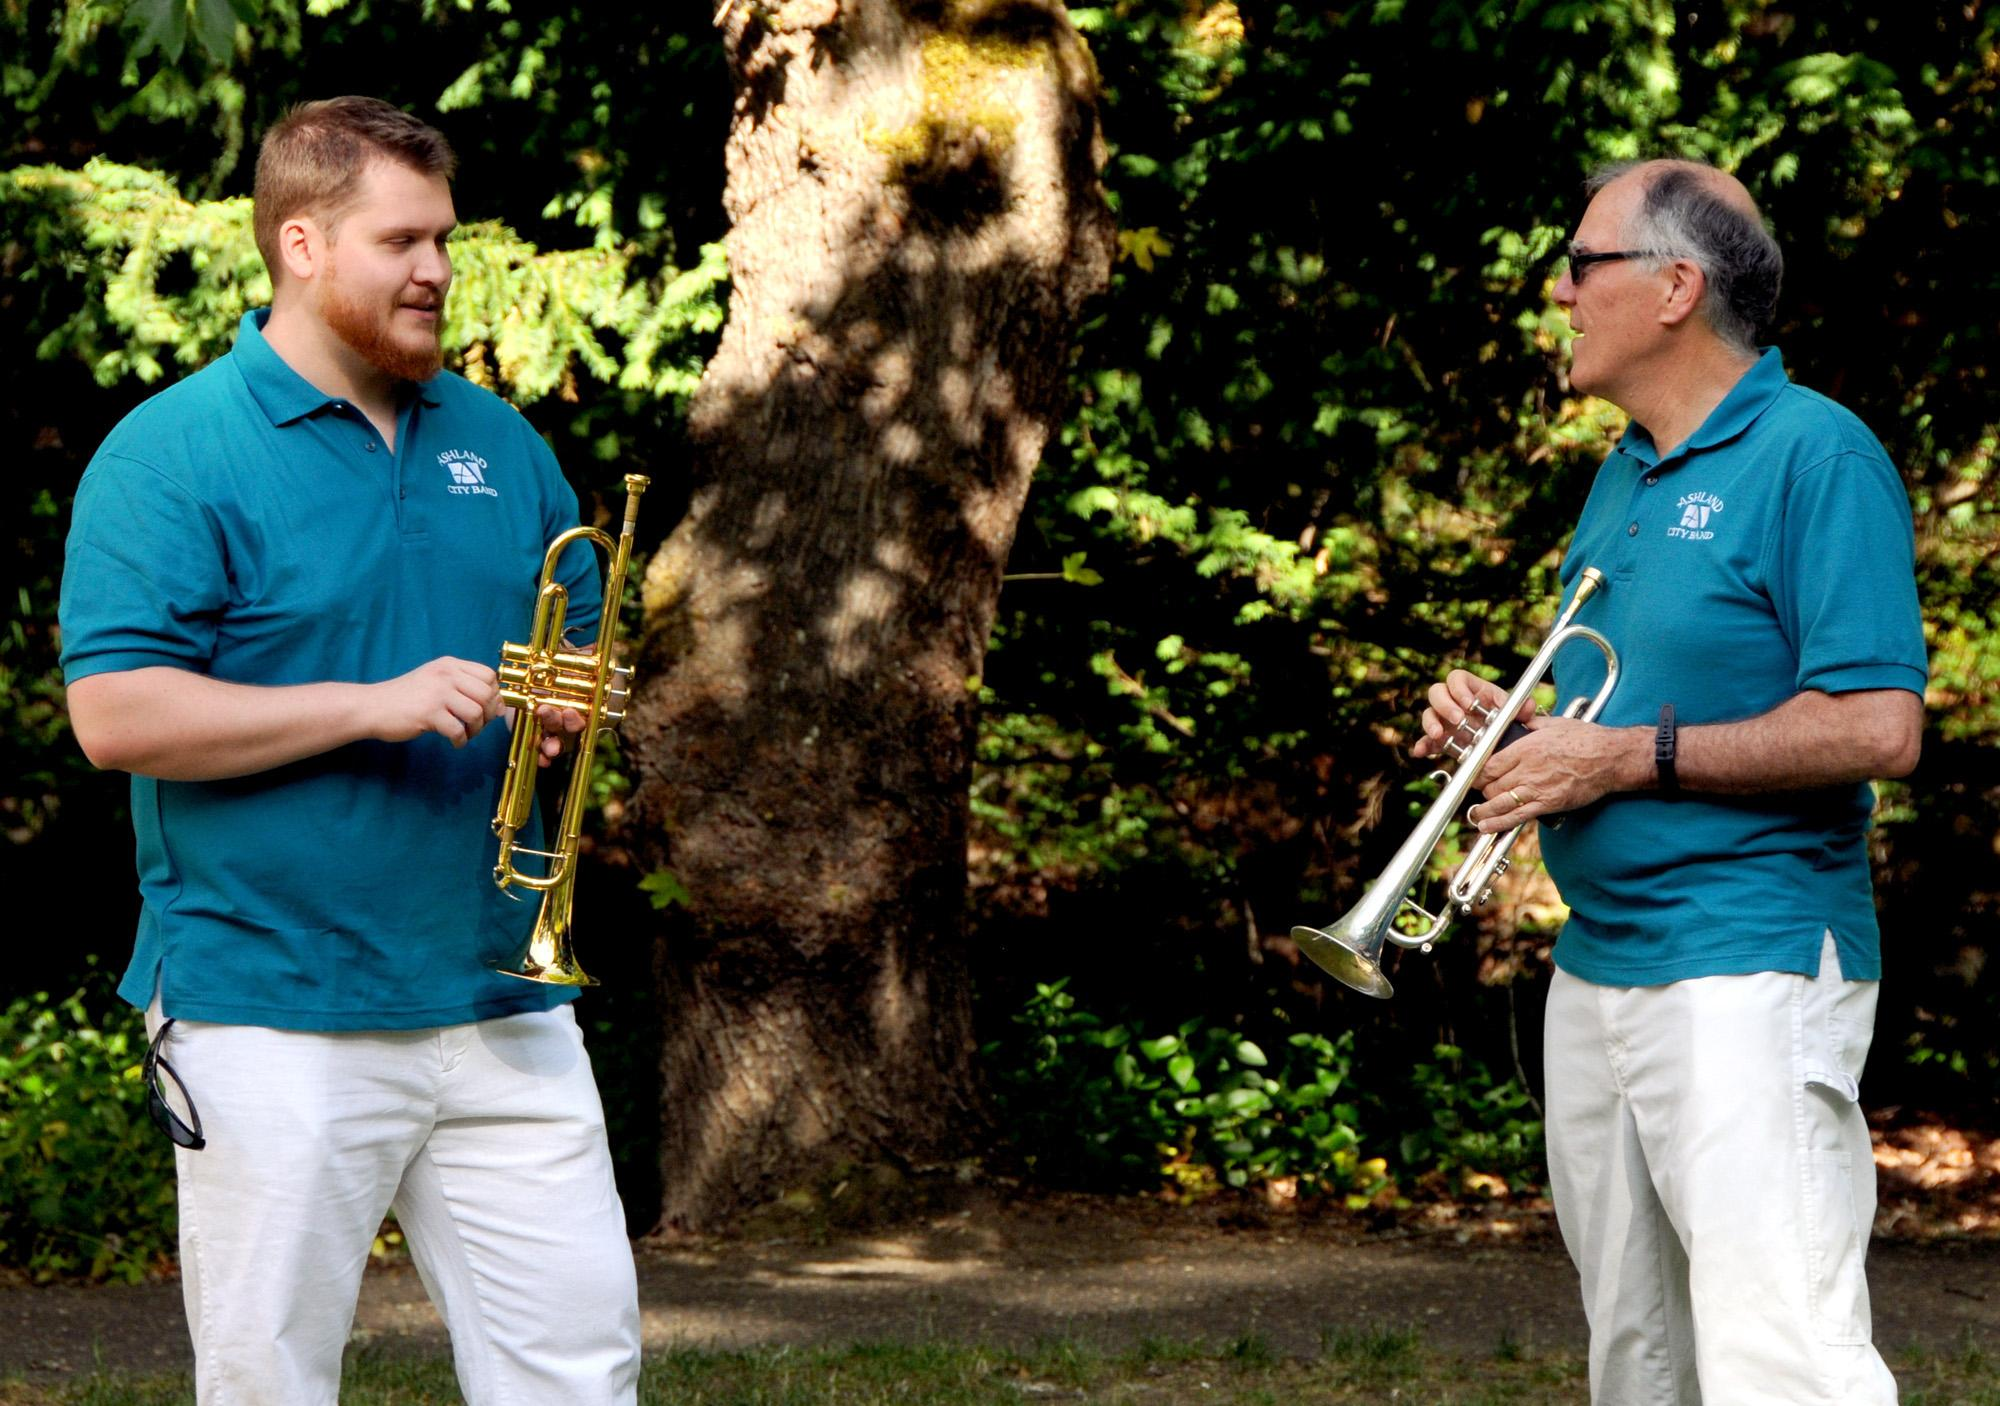 Trumpeters Kirk Albachten (left) and Bruce Dresser talk shop before the concert. (Photo by Jim Flint)